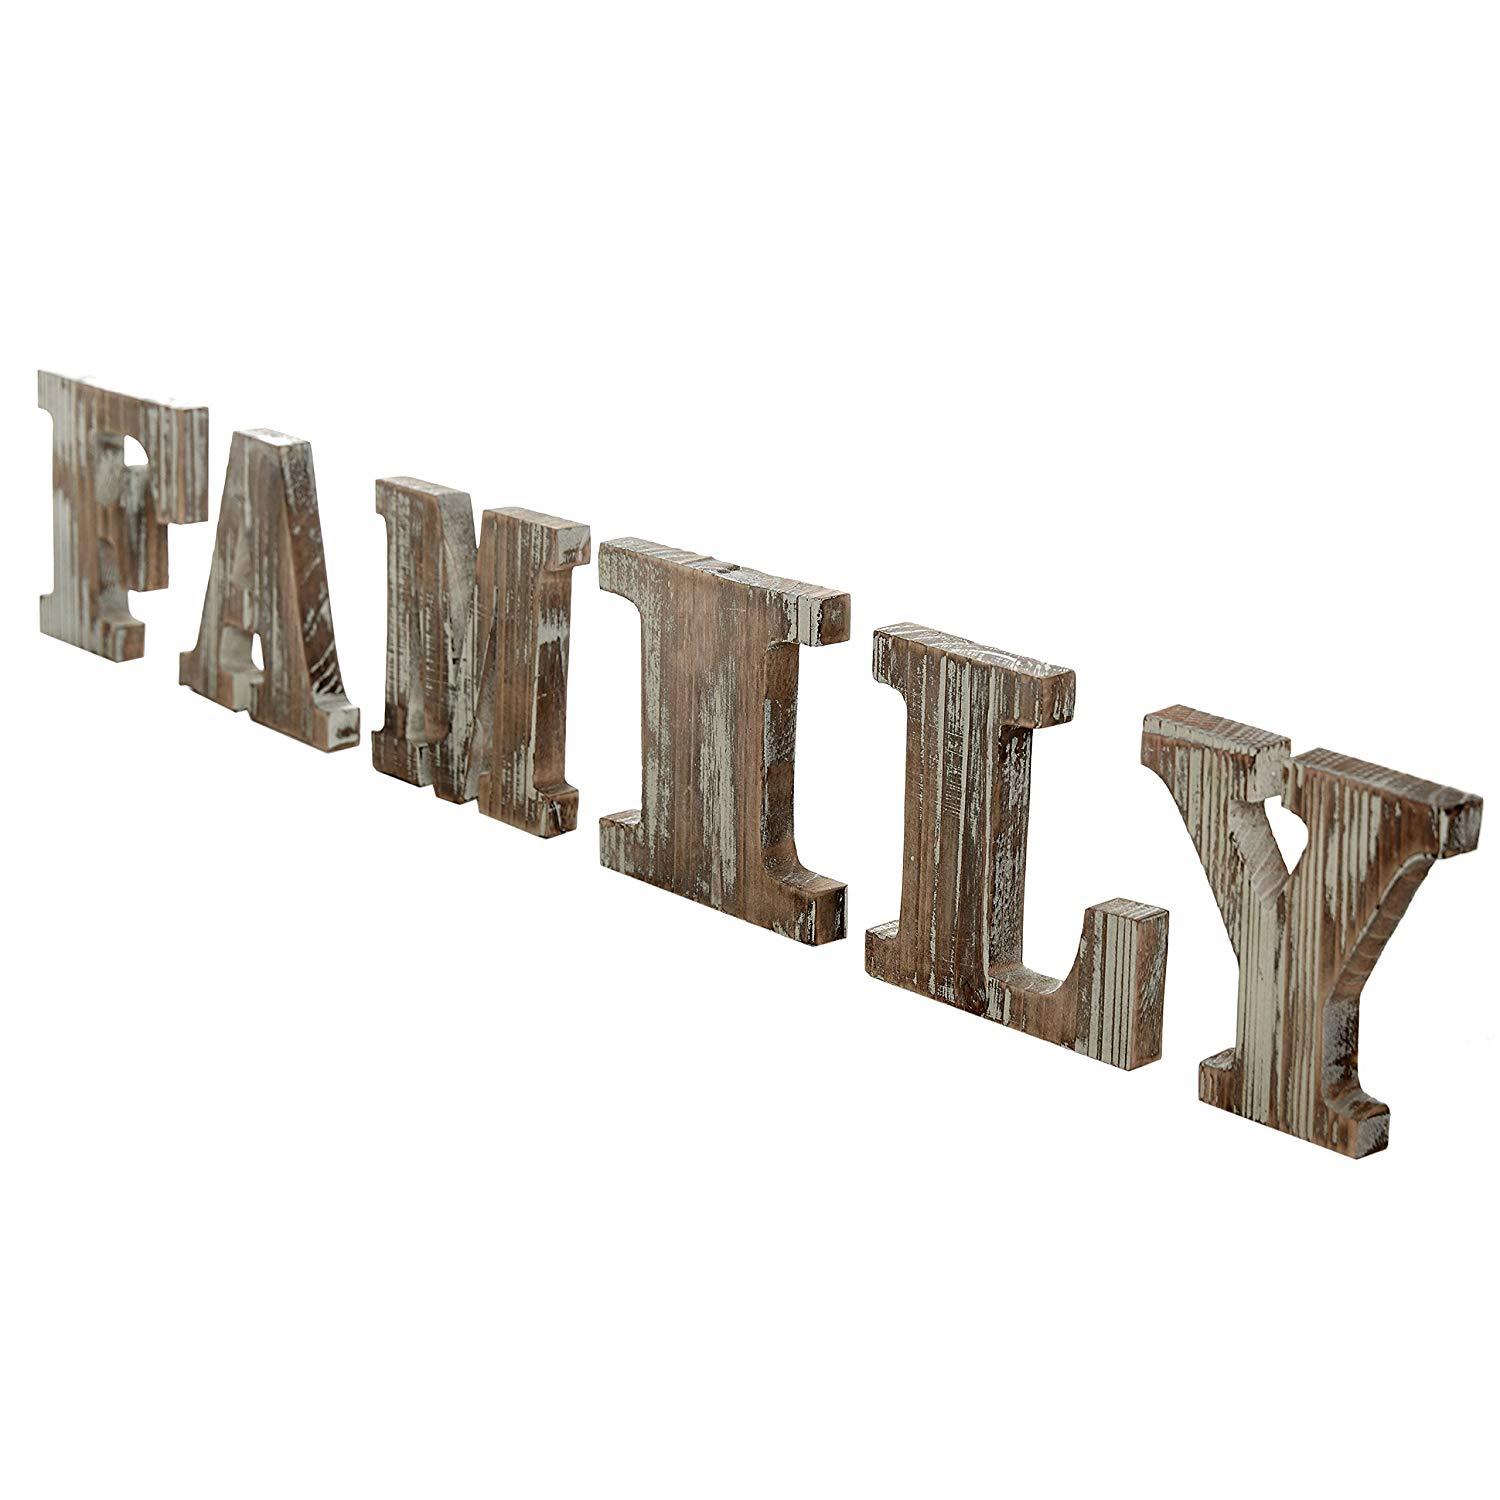 Mantel Decor Wood FAMILY Block featuring block letters